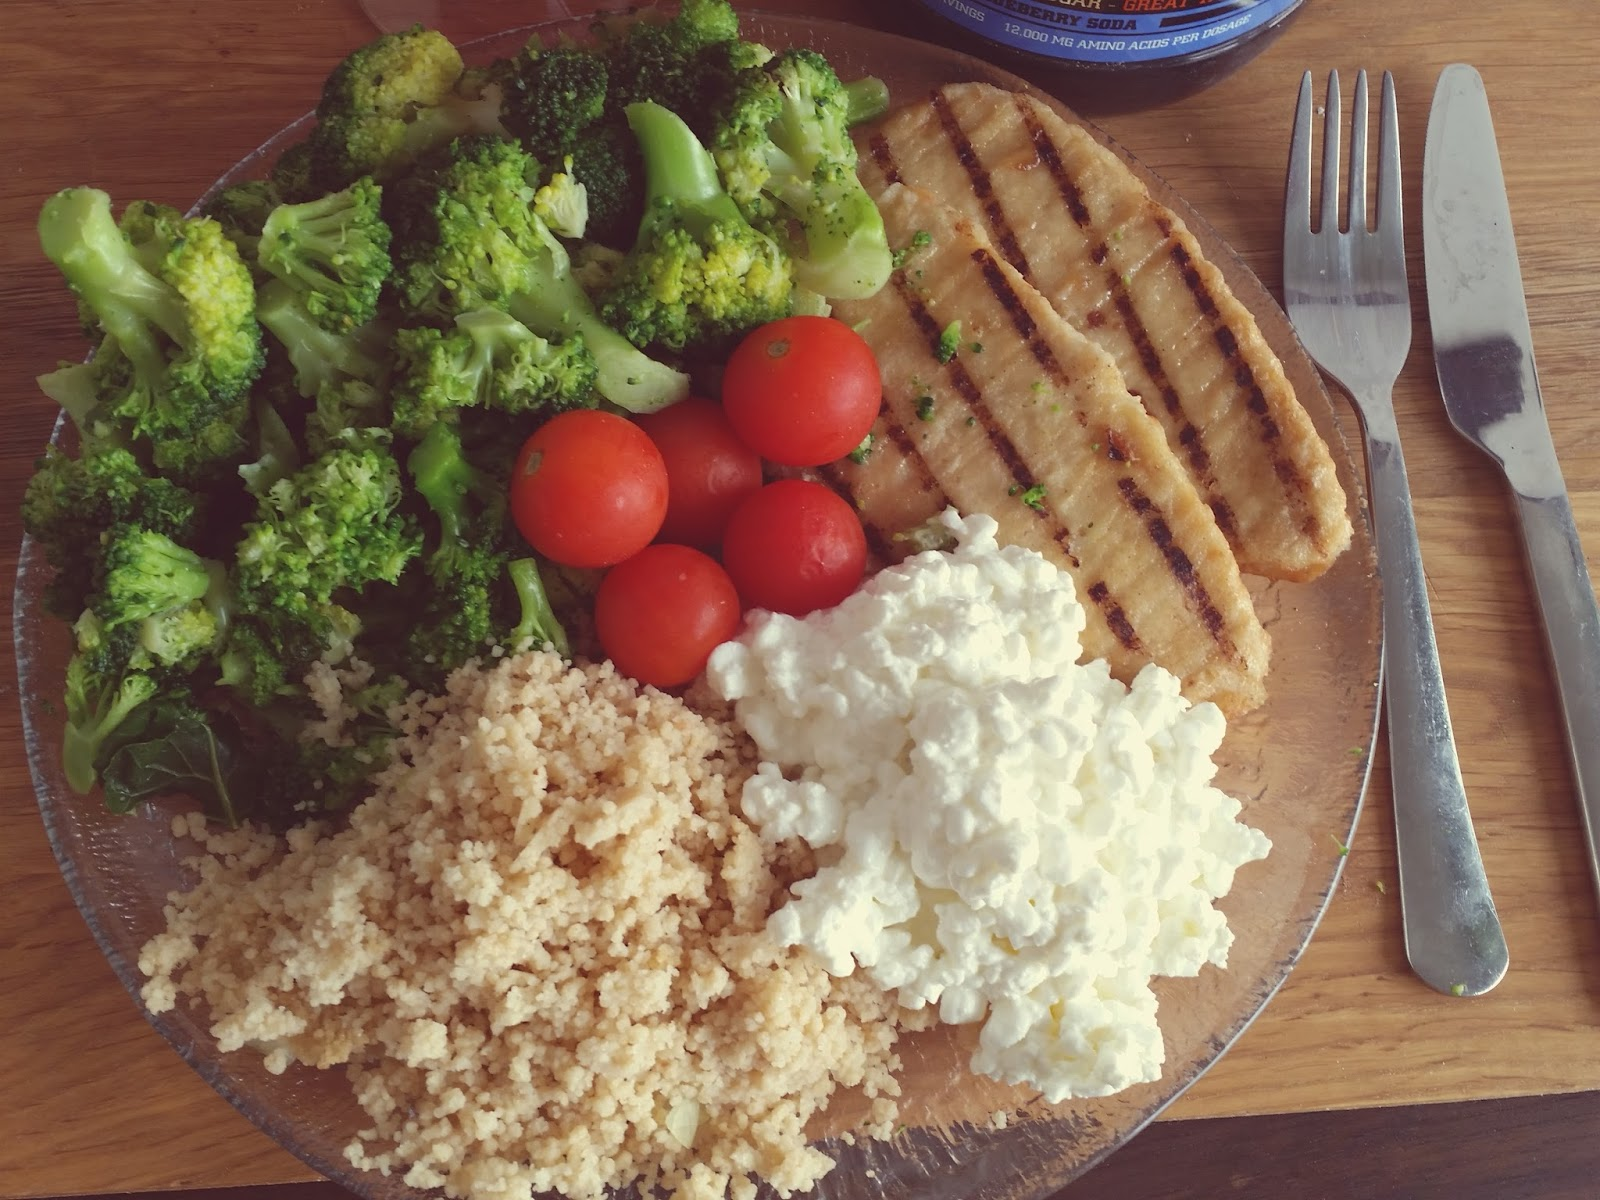 A Life Without Anorexia What Is A Balanced Meal